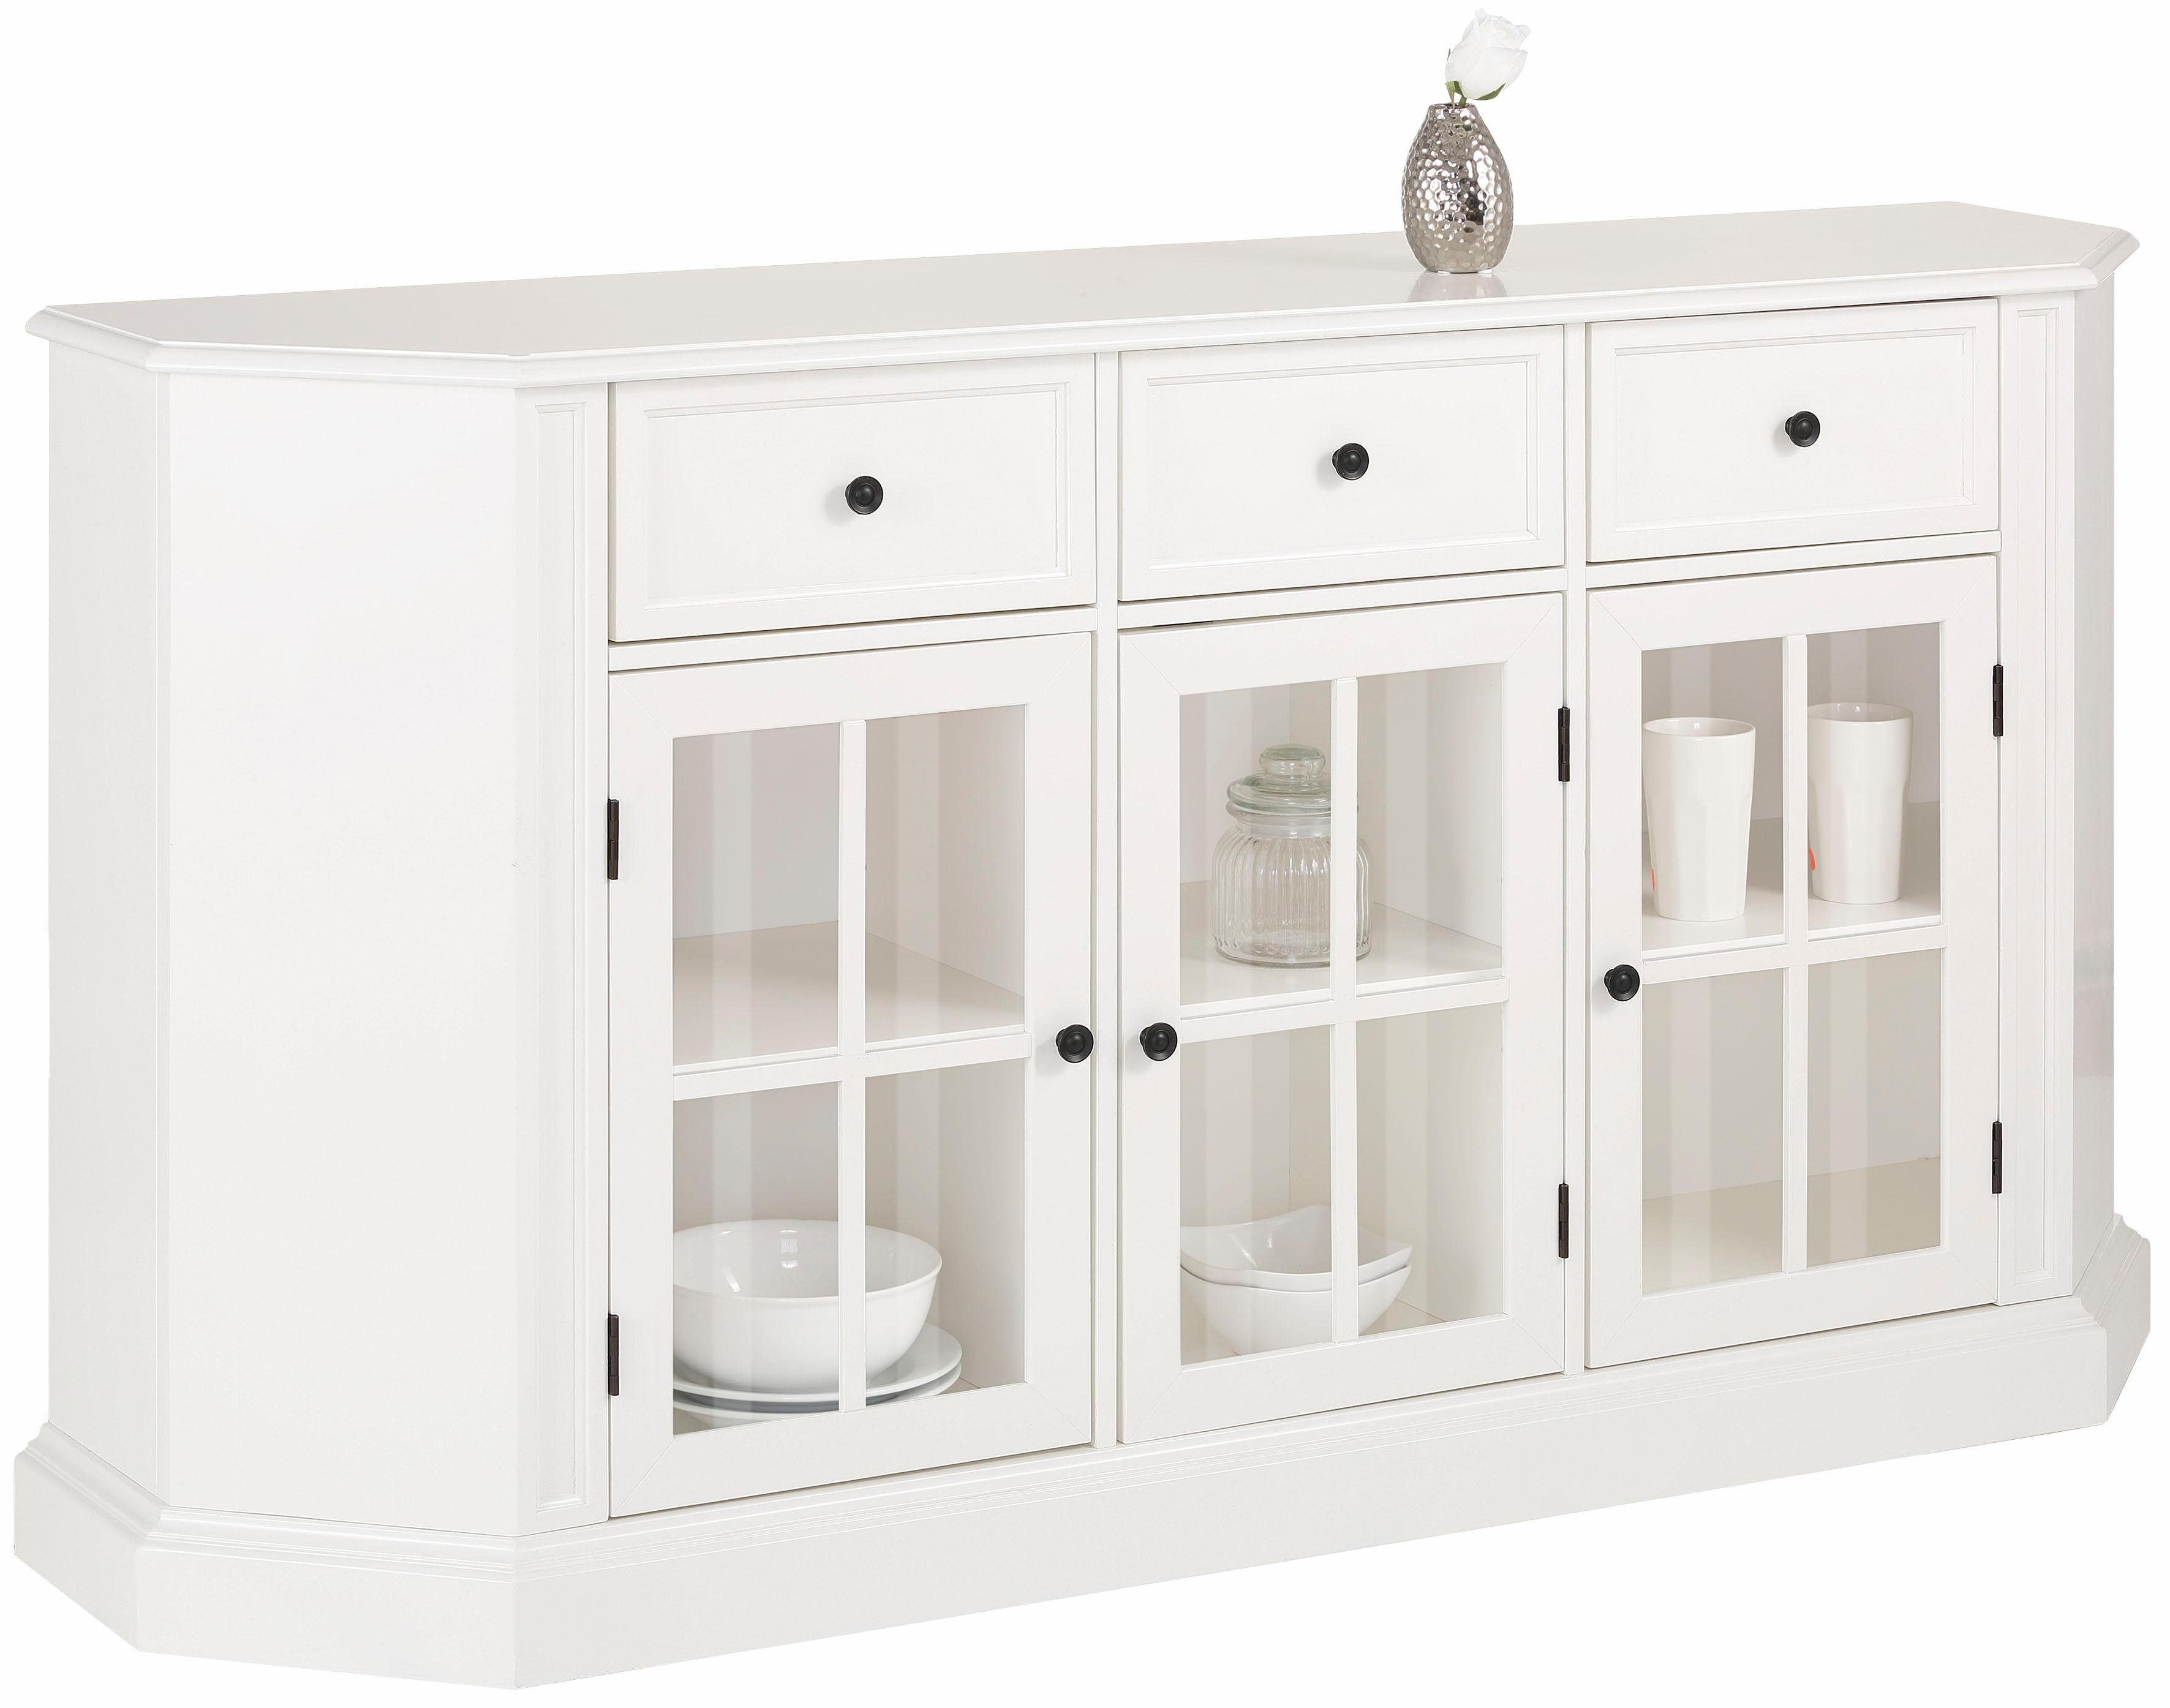 Home affaire Sideboard »Lille«, Breite 160 cm